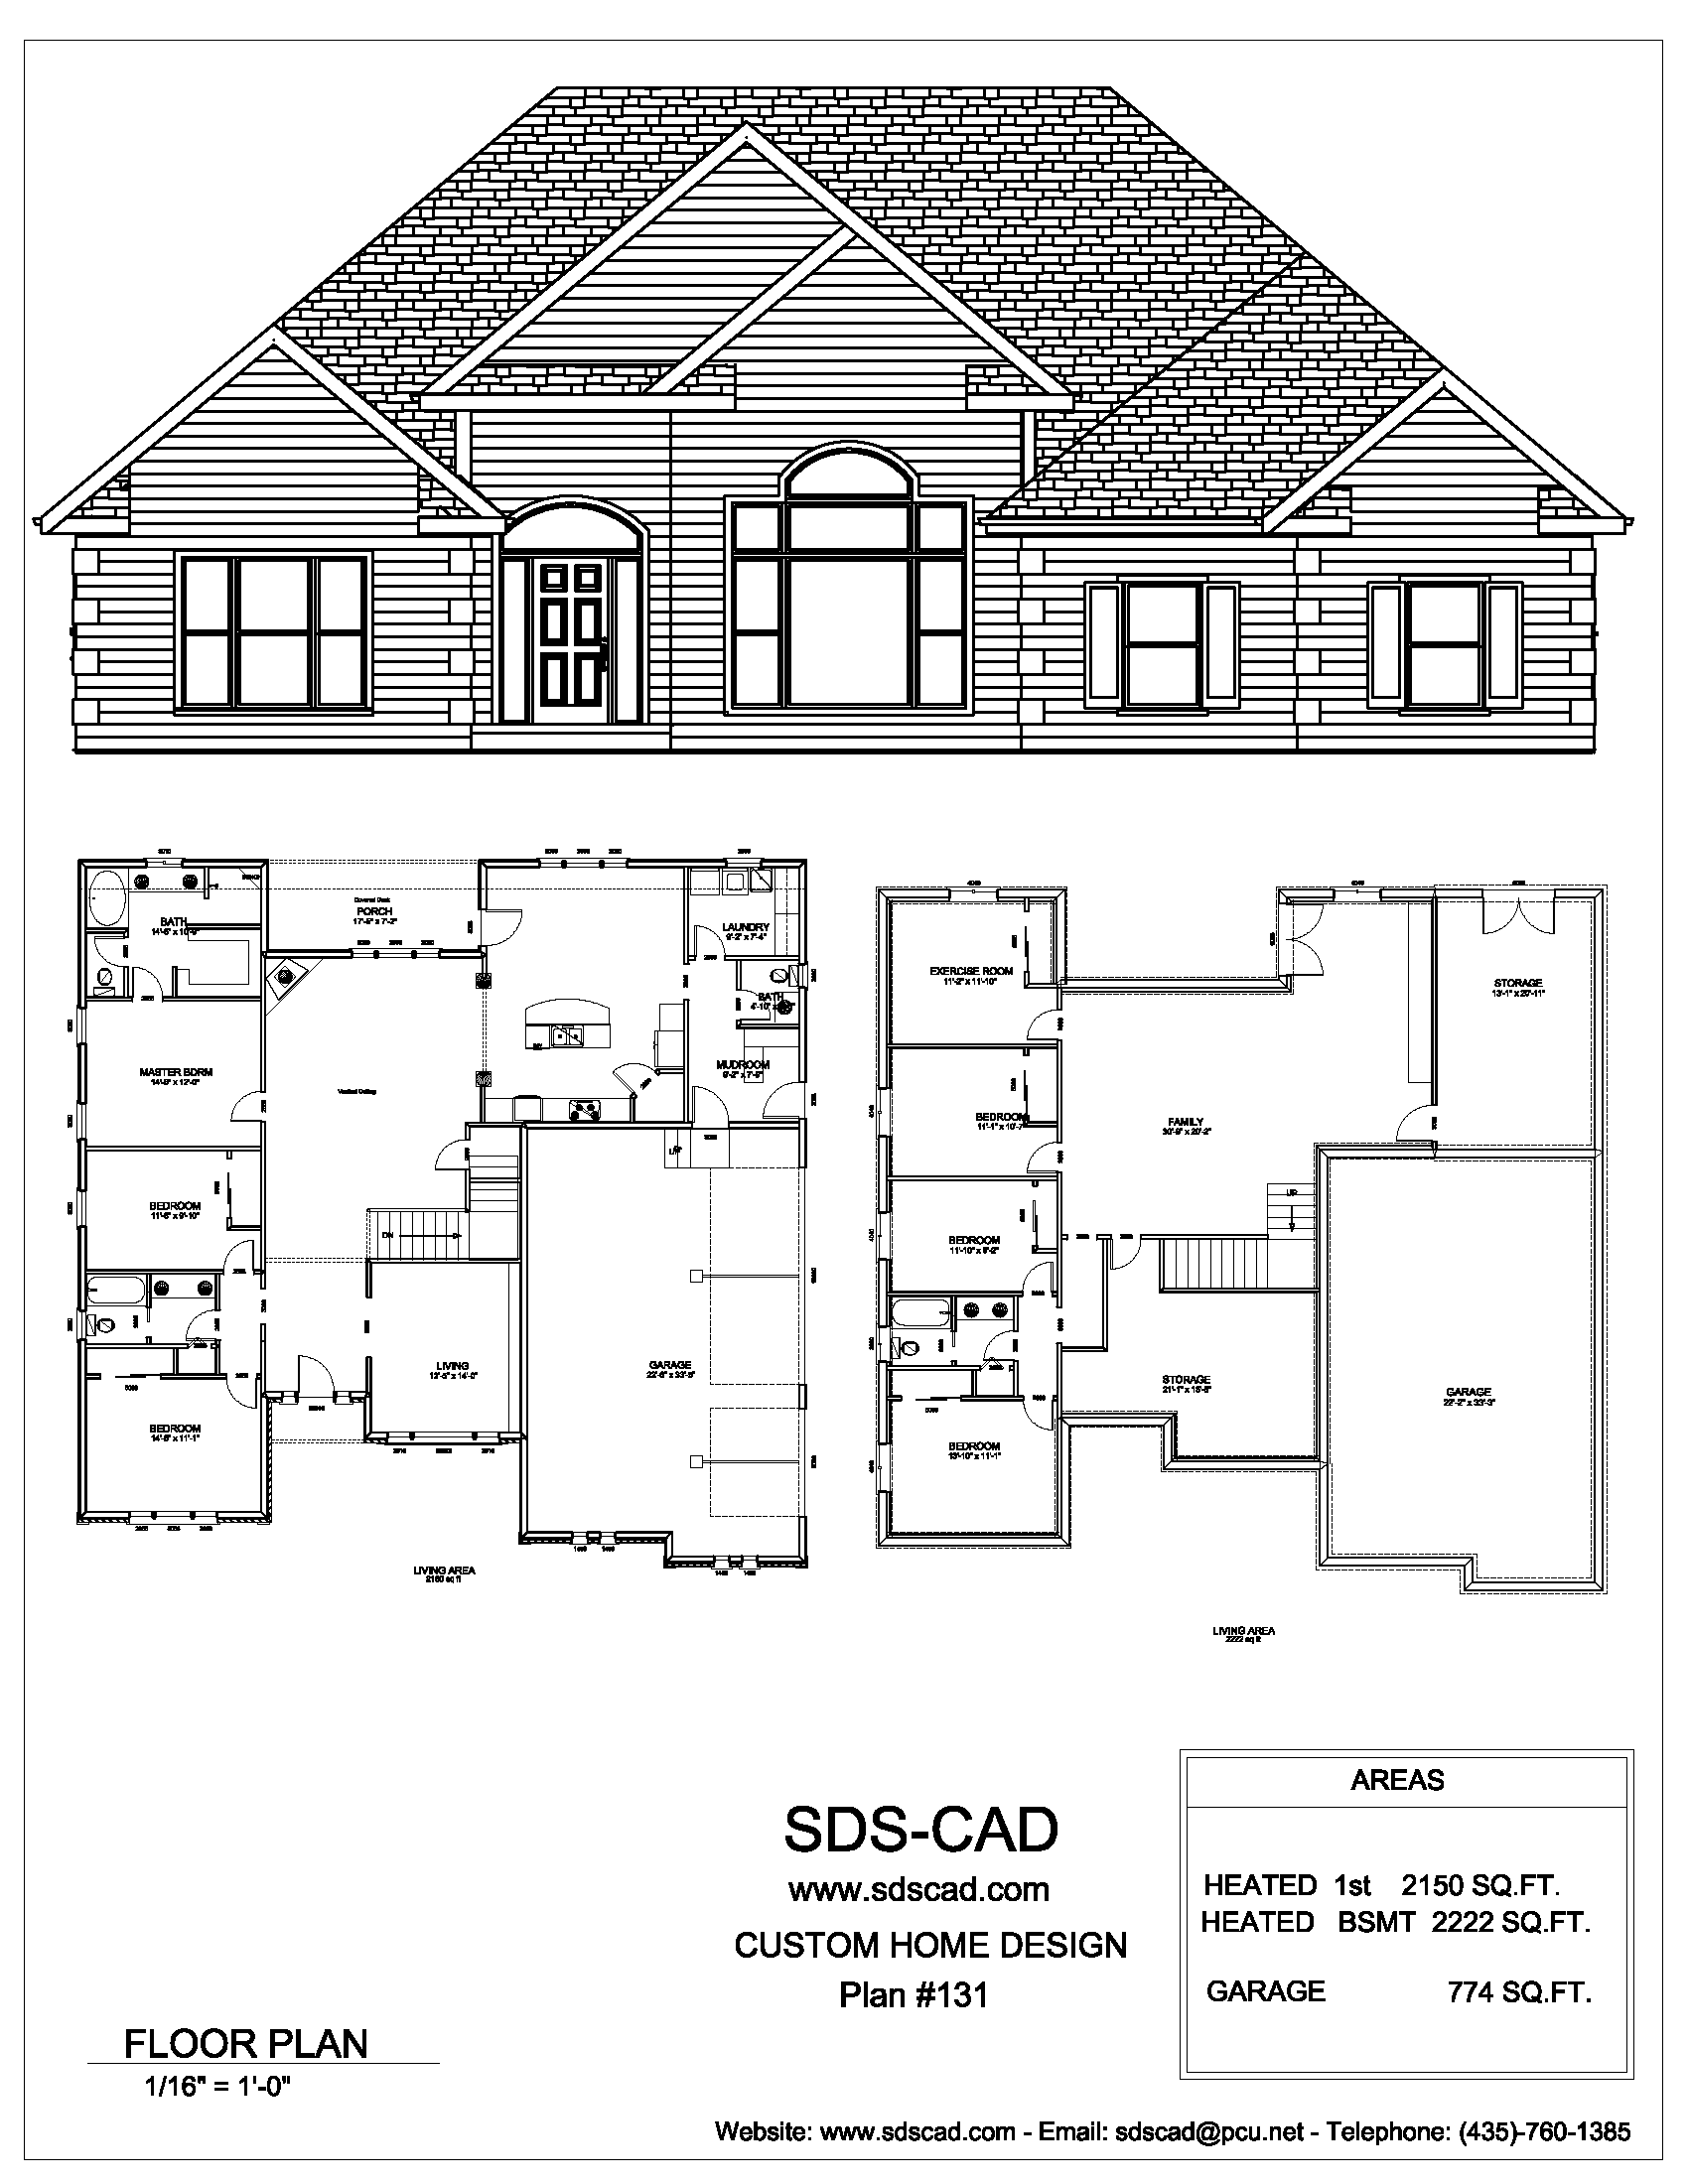 Complete House Plans Blueprints Construction Documents From Sdscad